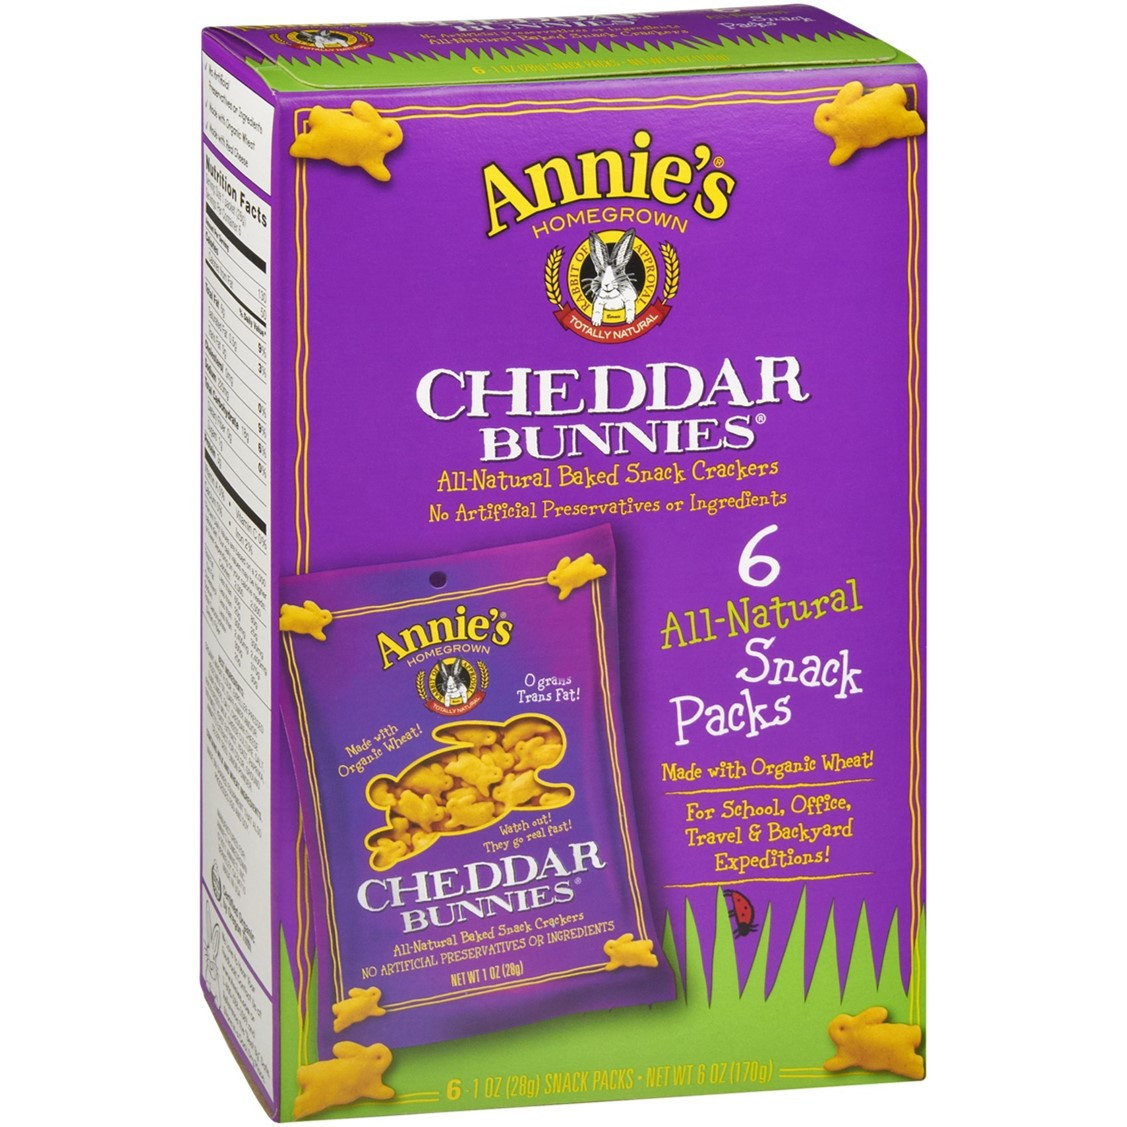 Annie's Homegrown Cheddar Bunnies - Original (Snack Pack), 6 x 28g